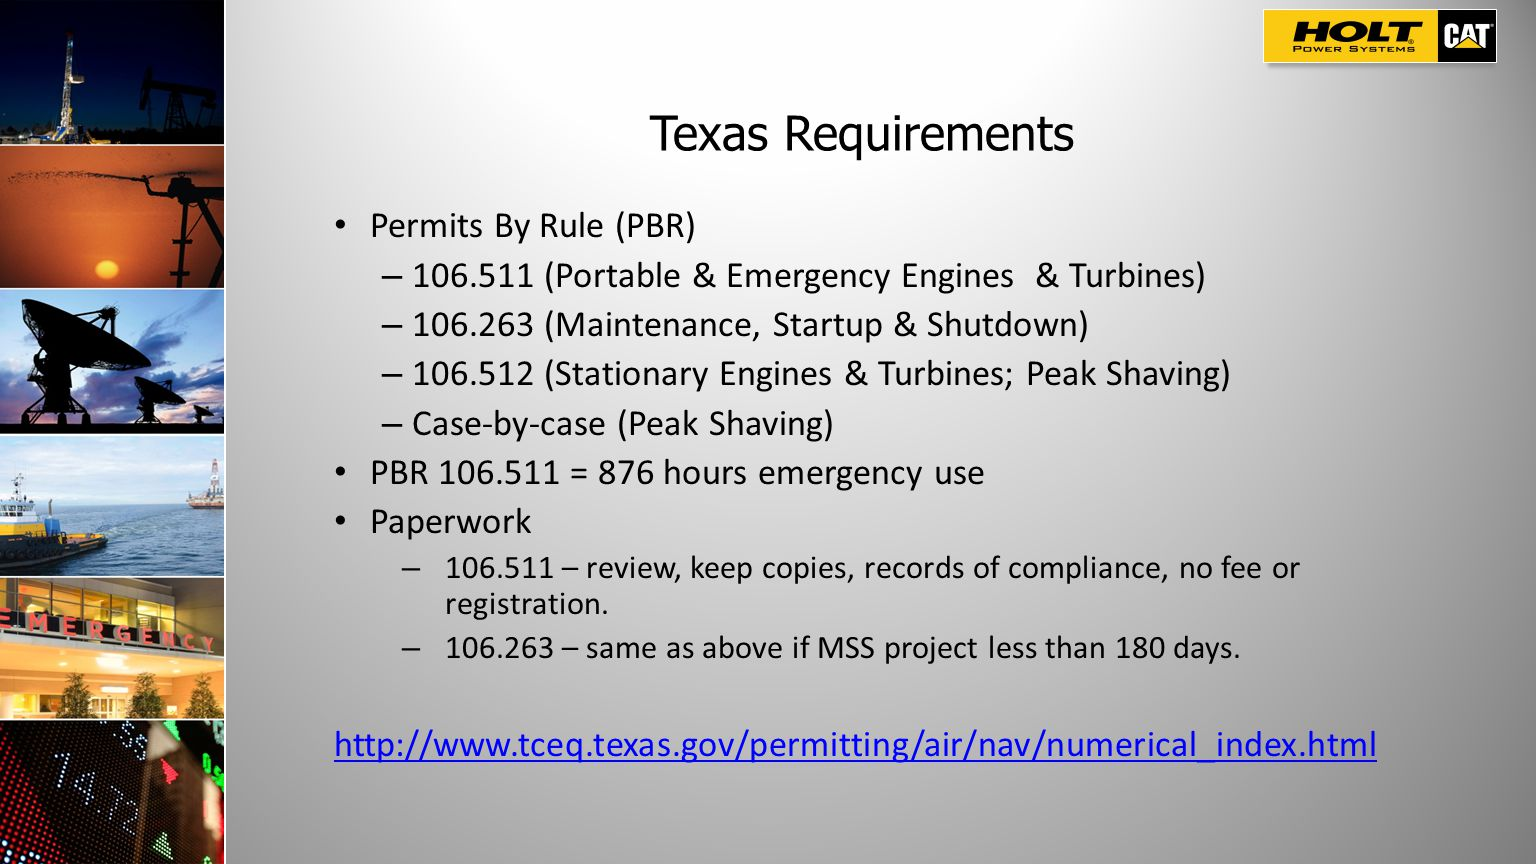 Texas Requirements Permits By Rule (PBR)